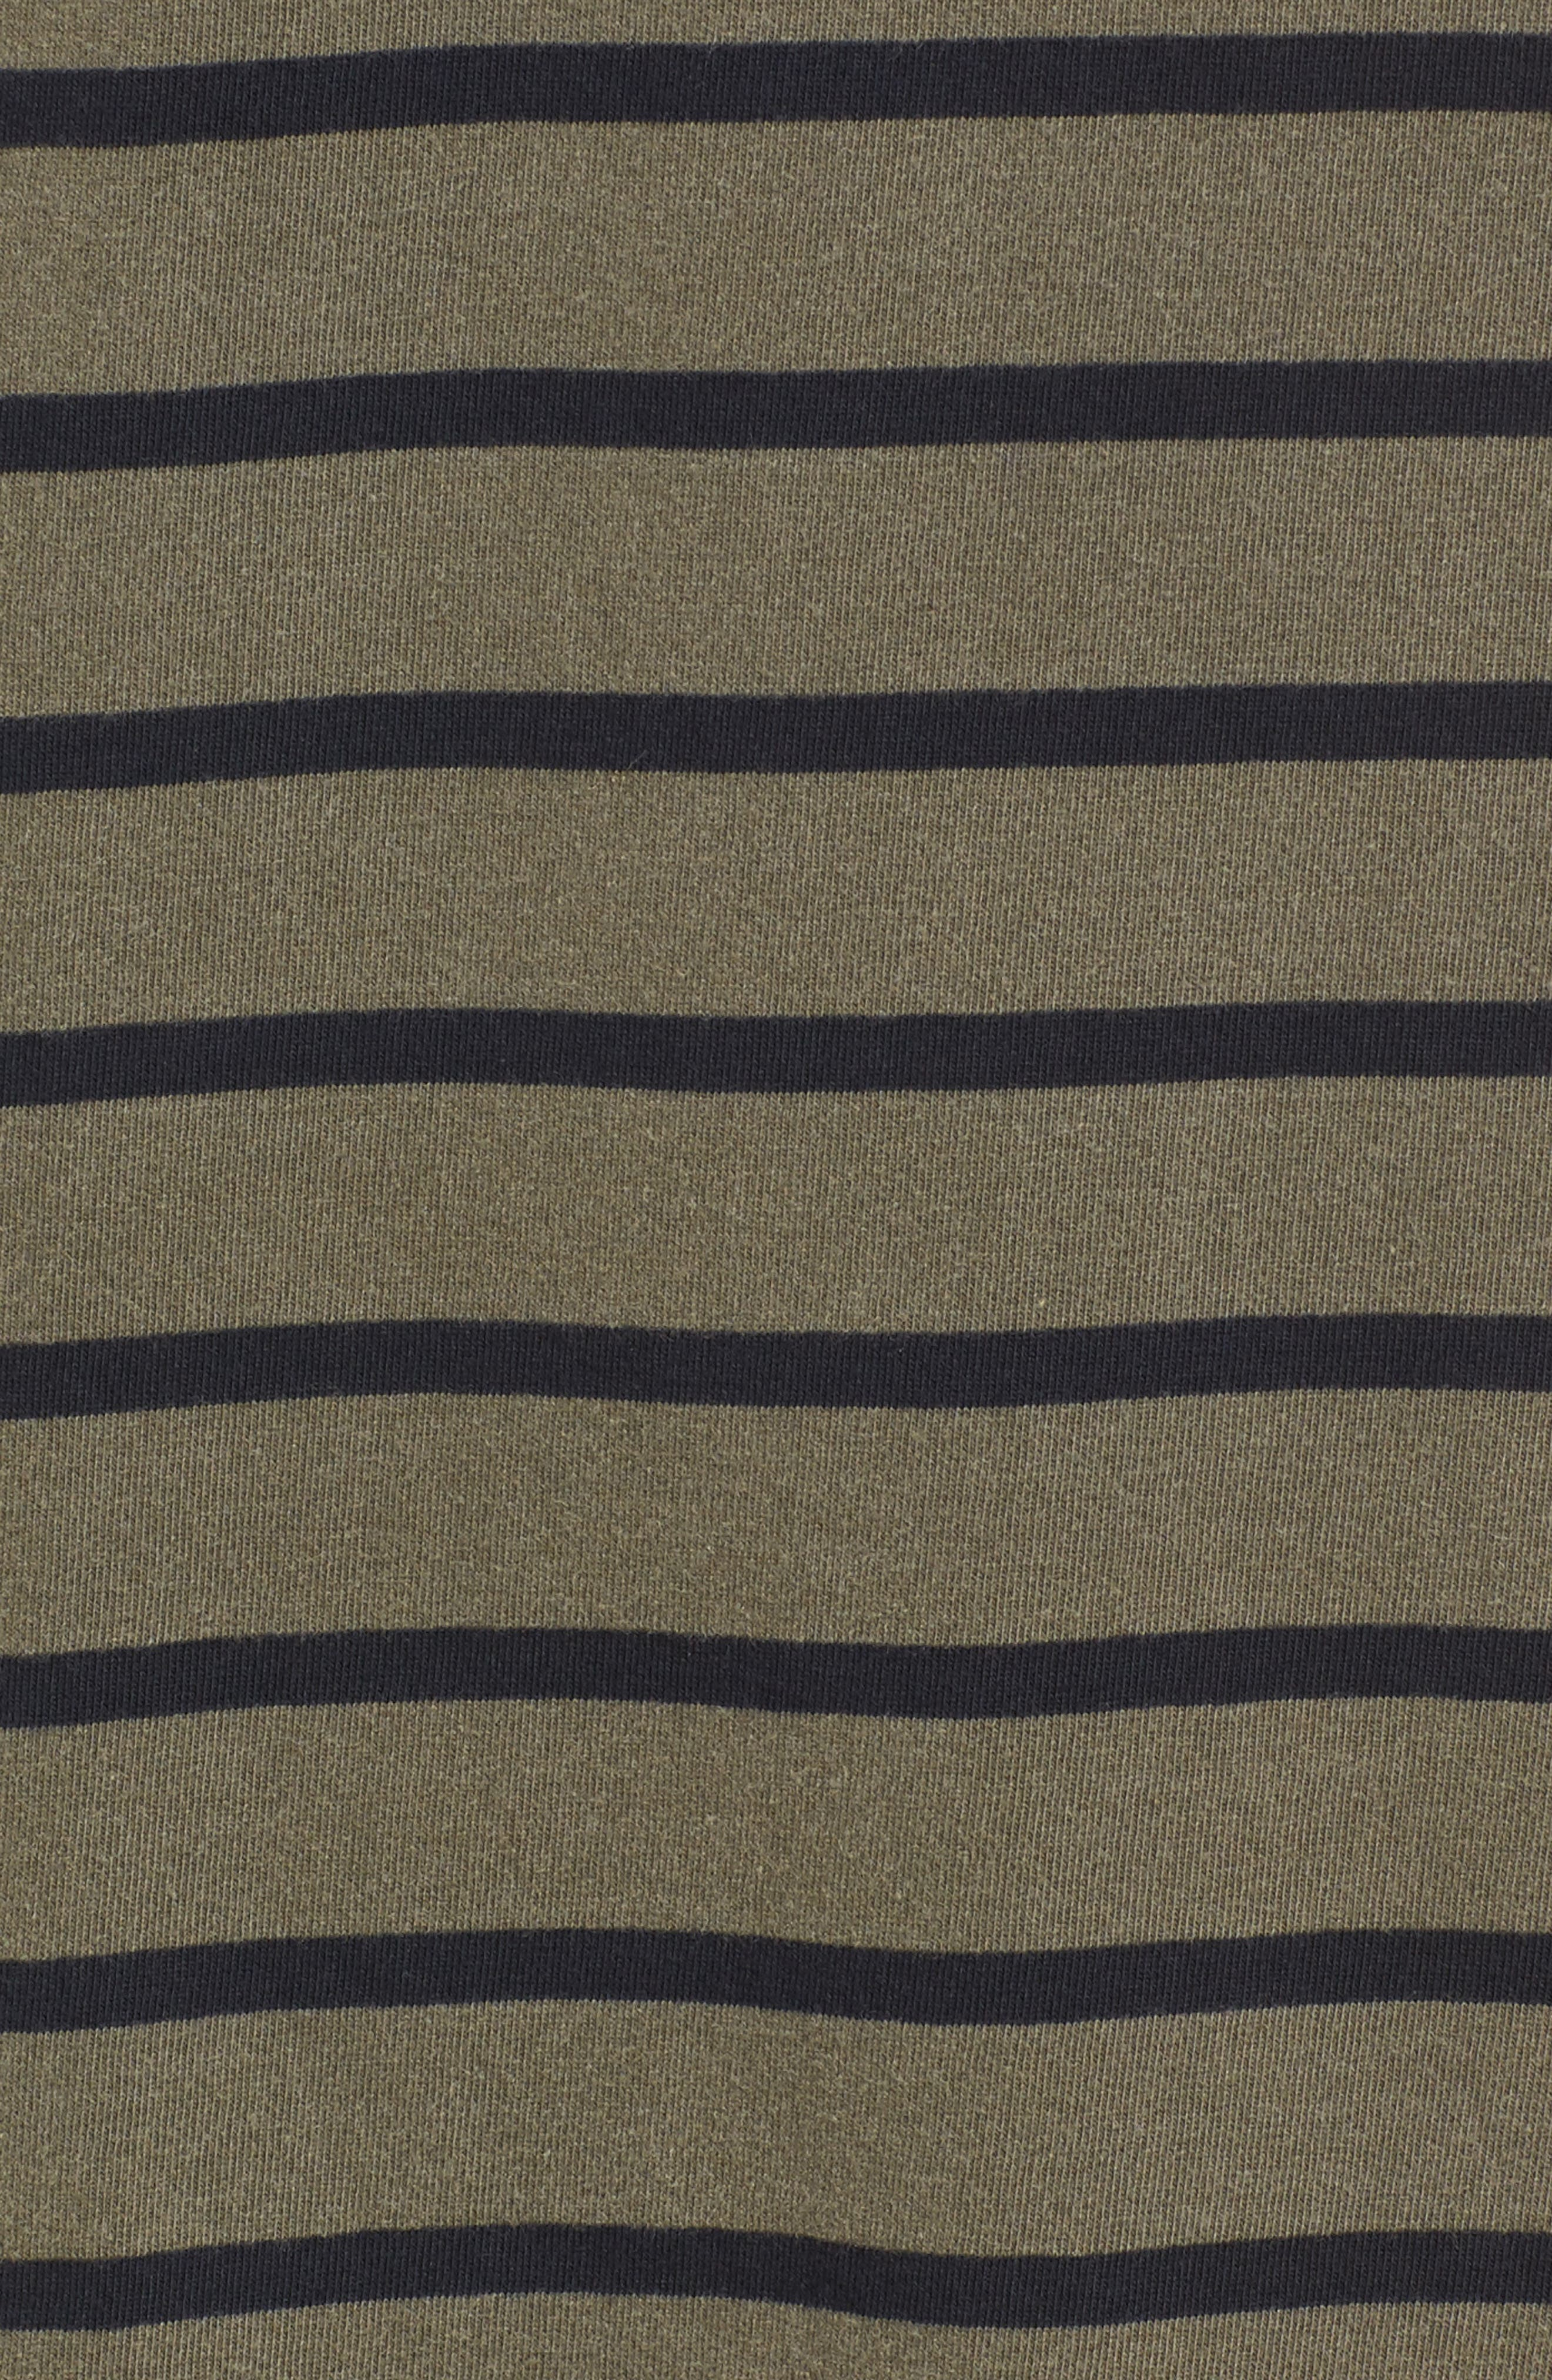 Alternate Image 5  - Stateside Stripe T-Shirt Dress